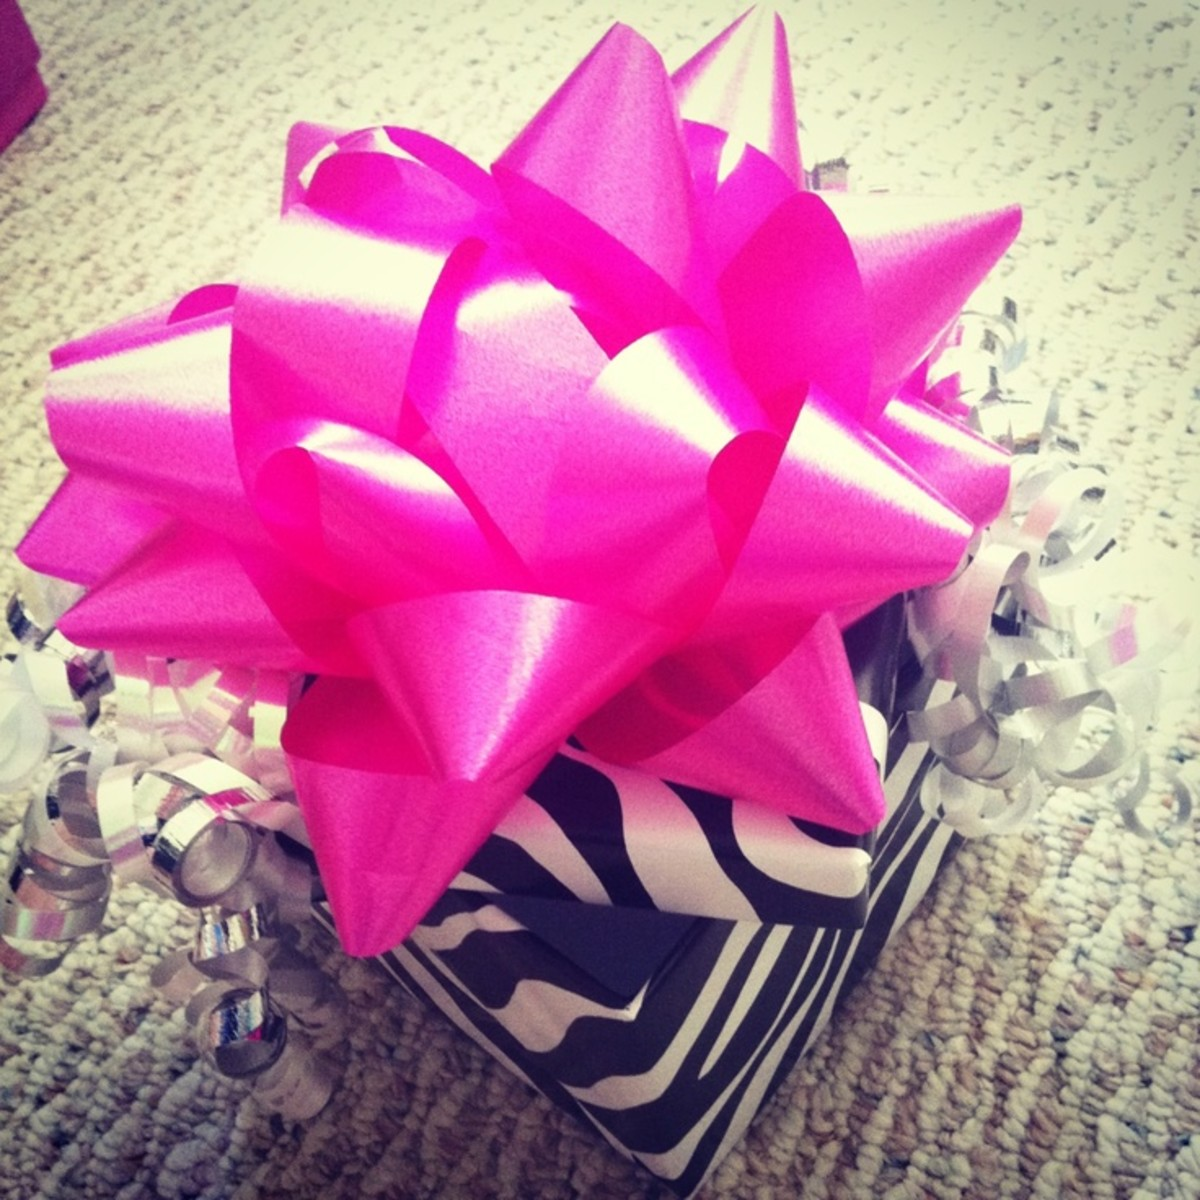 Click Pick for 24 DIY Dollar Store Crafts for Teens | Homemade Dollar Store Gifts Ideas